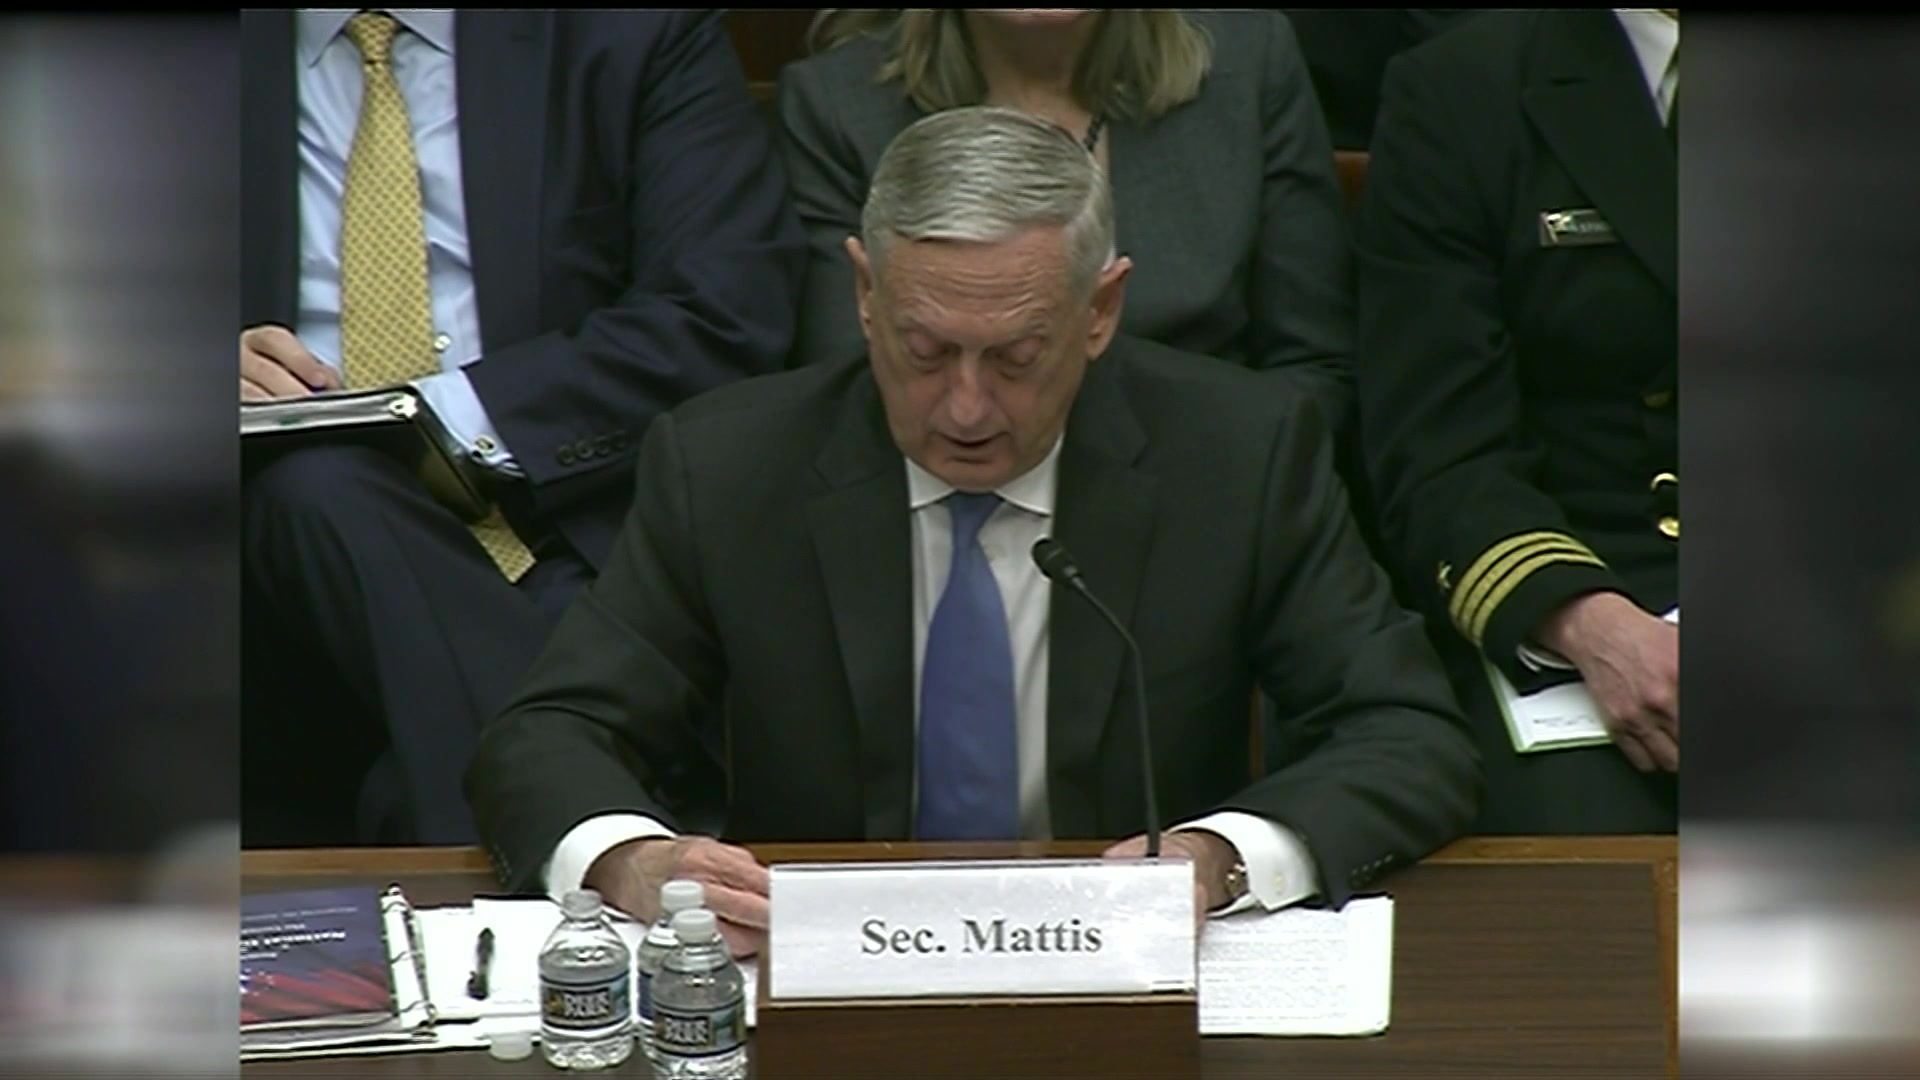 Defense Secretary James N. Mattis and Air Force Gen. Paul Selva, the vice chairman of the Joint Chiefs of Staff, testify before the House Armed Services Committee on the National Defense Strategy and the Nuclear Posture Review, Feb. 6, 2018.